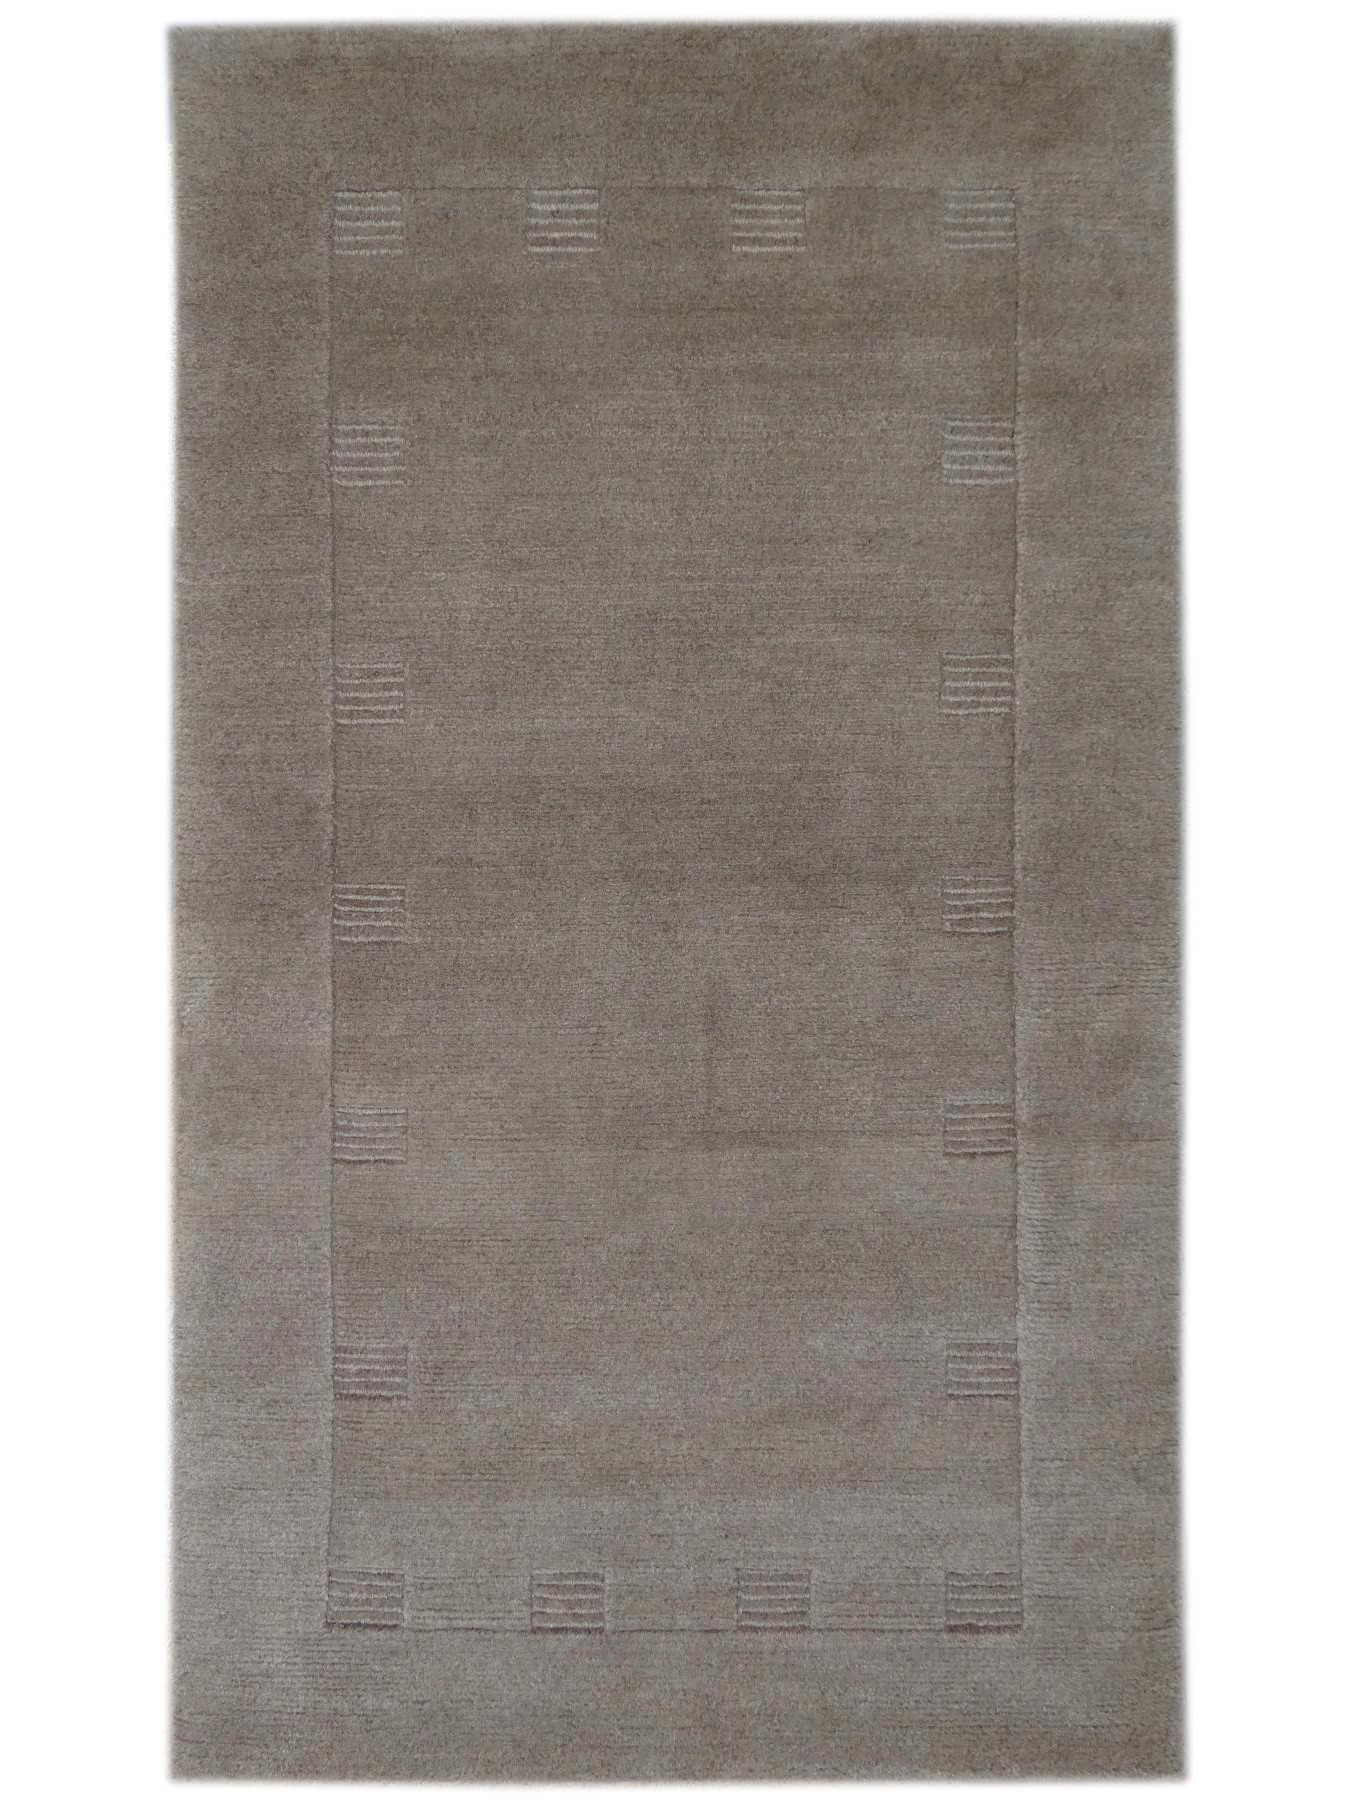 Carpets with borders - ROCK 2 - 9004